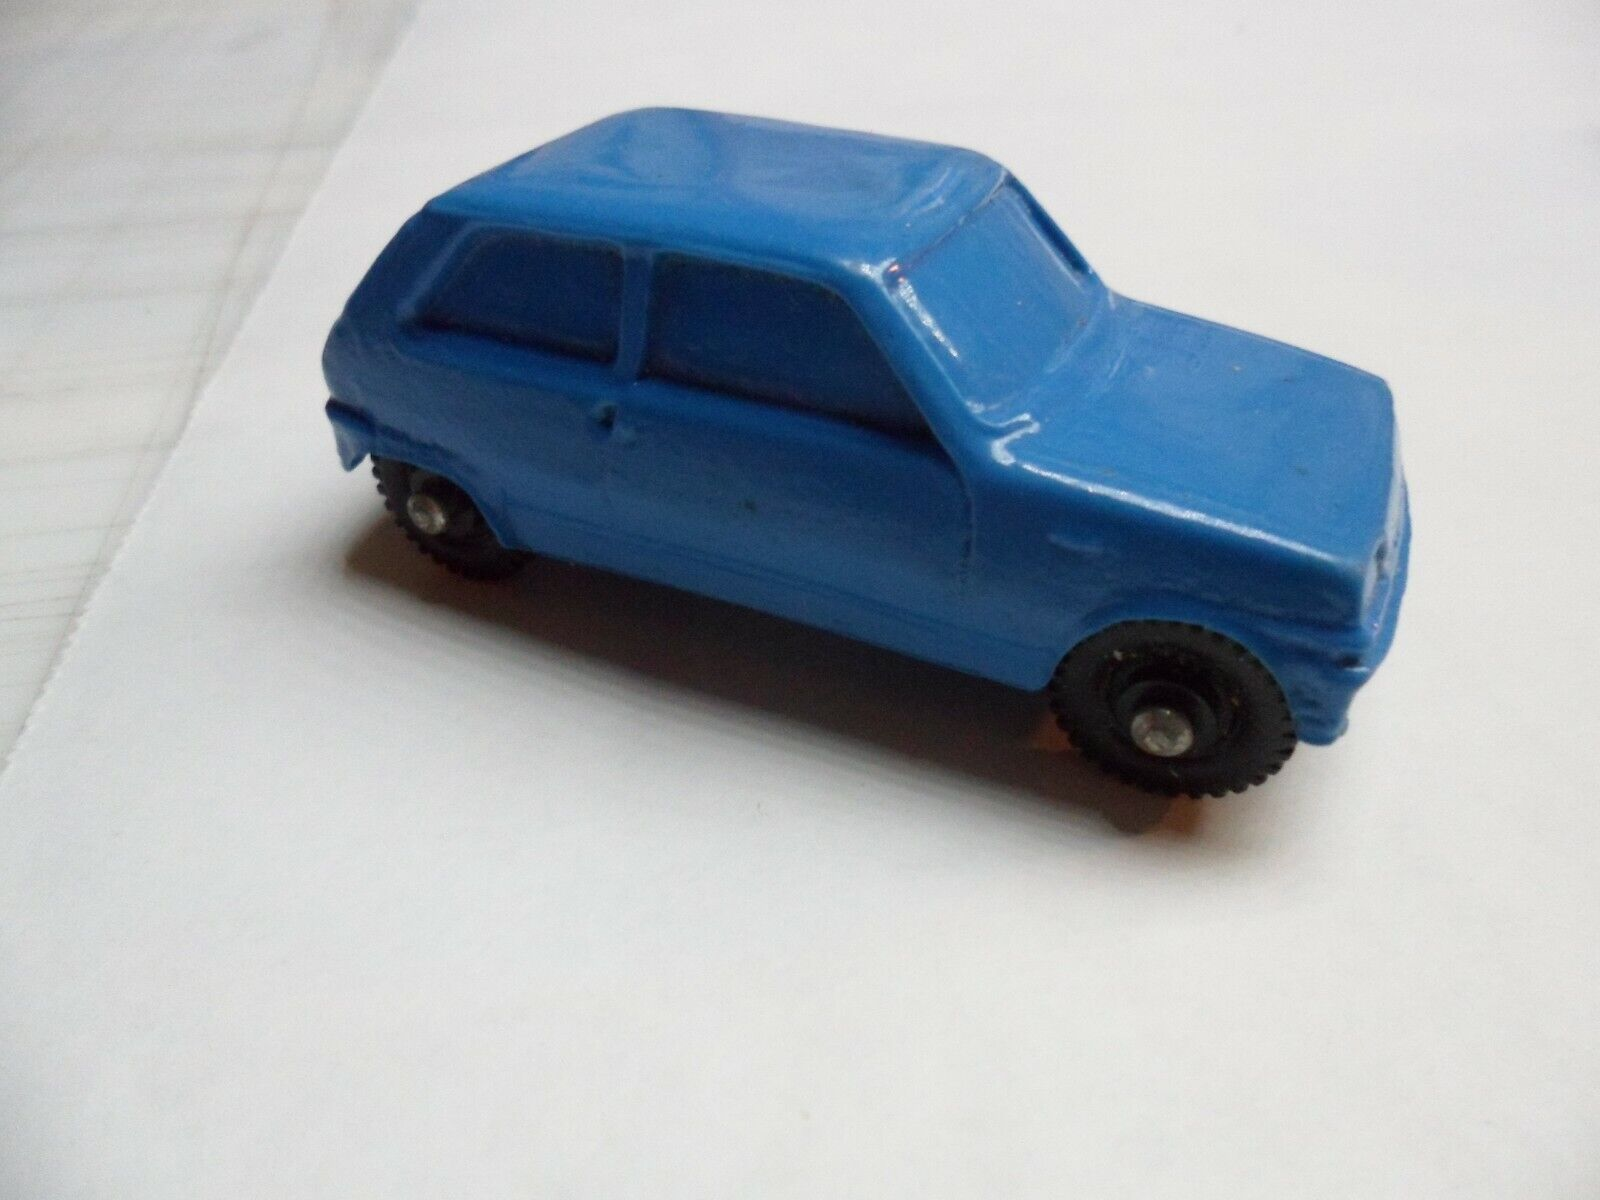 TOMTE RENAULT 5 PLASTIC  CAR No.30 IN blueE